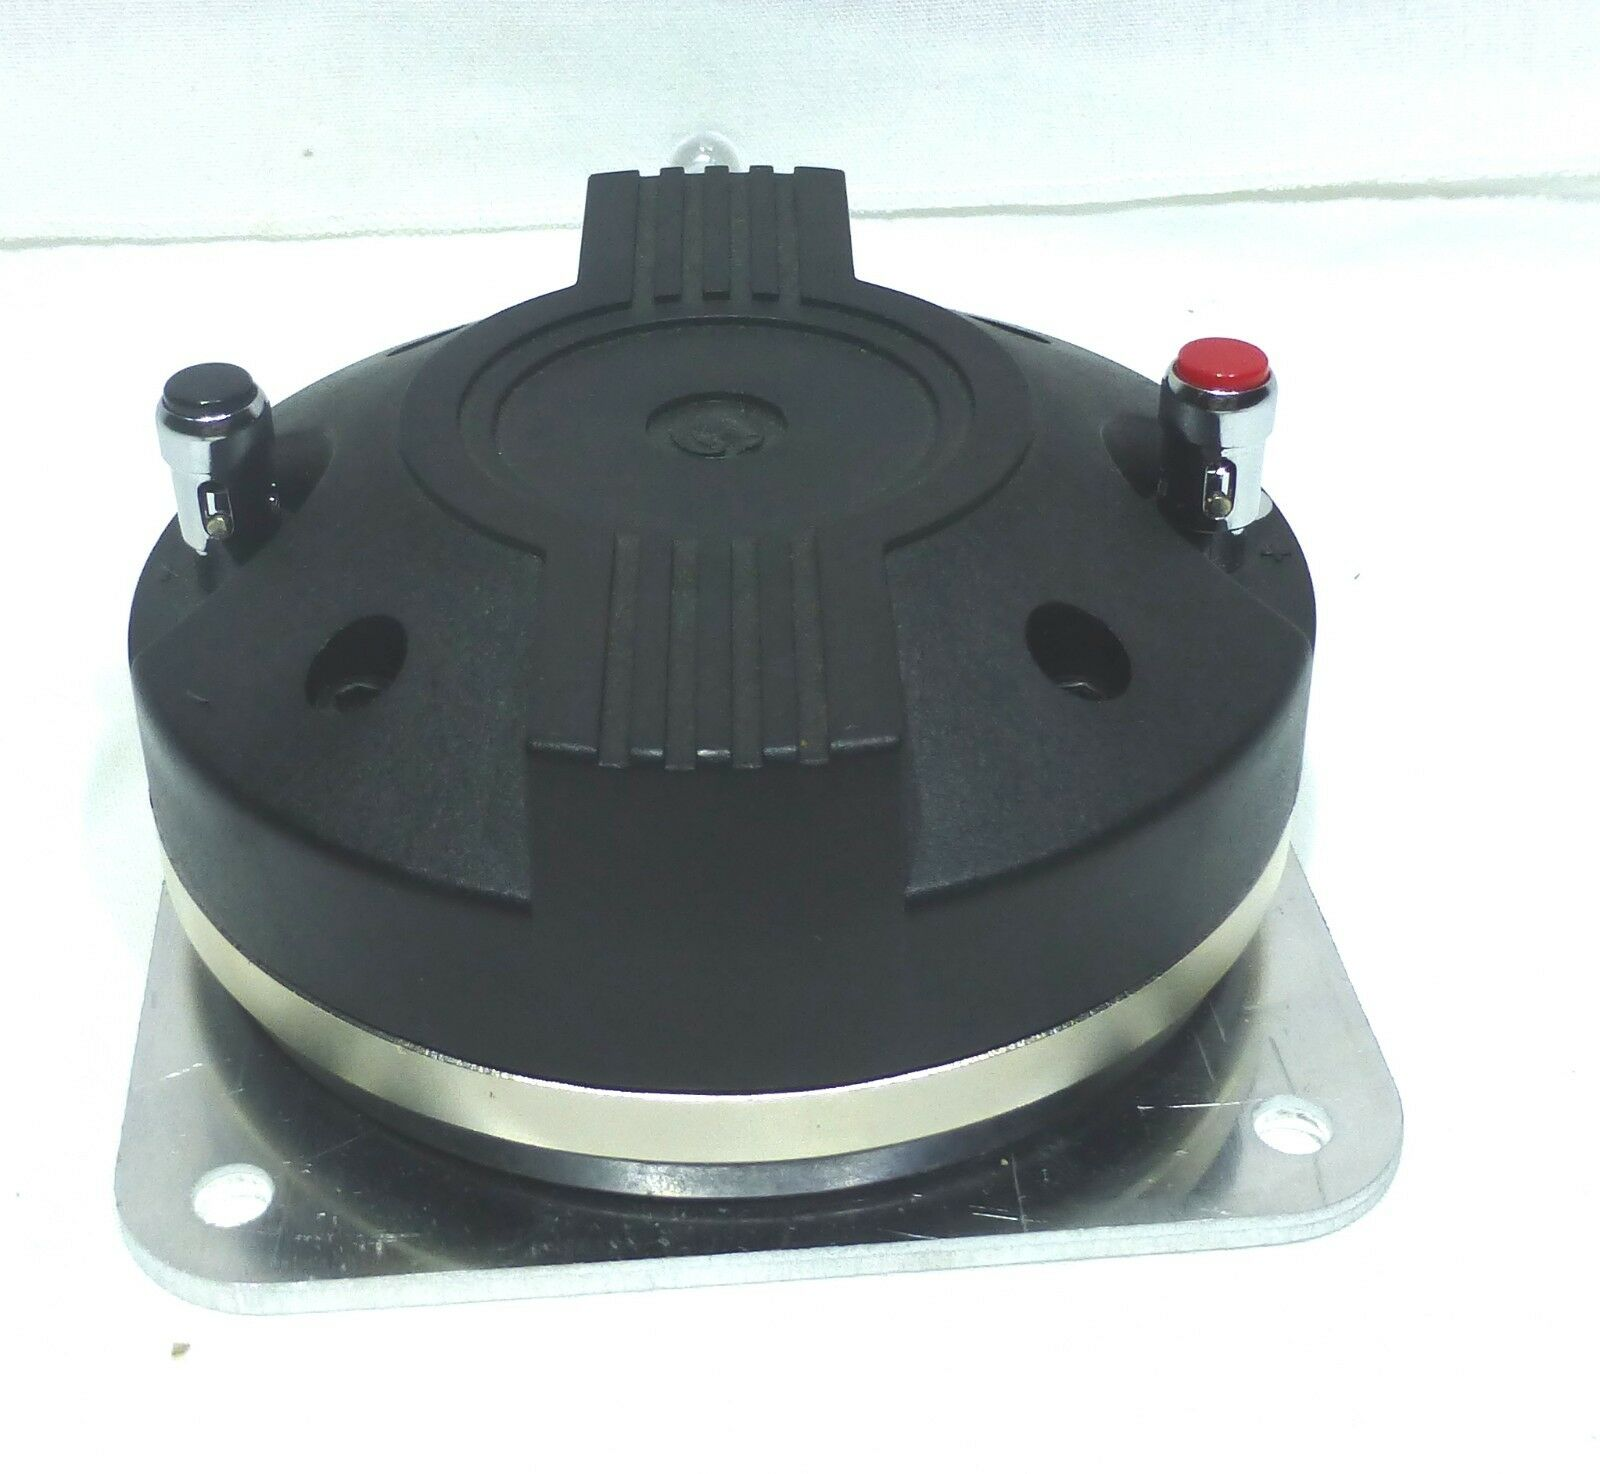 Replacement Driver For Mackie 0013925 DN10 1704-8, SN-D44 For SA1530, SA1532Z